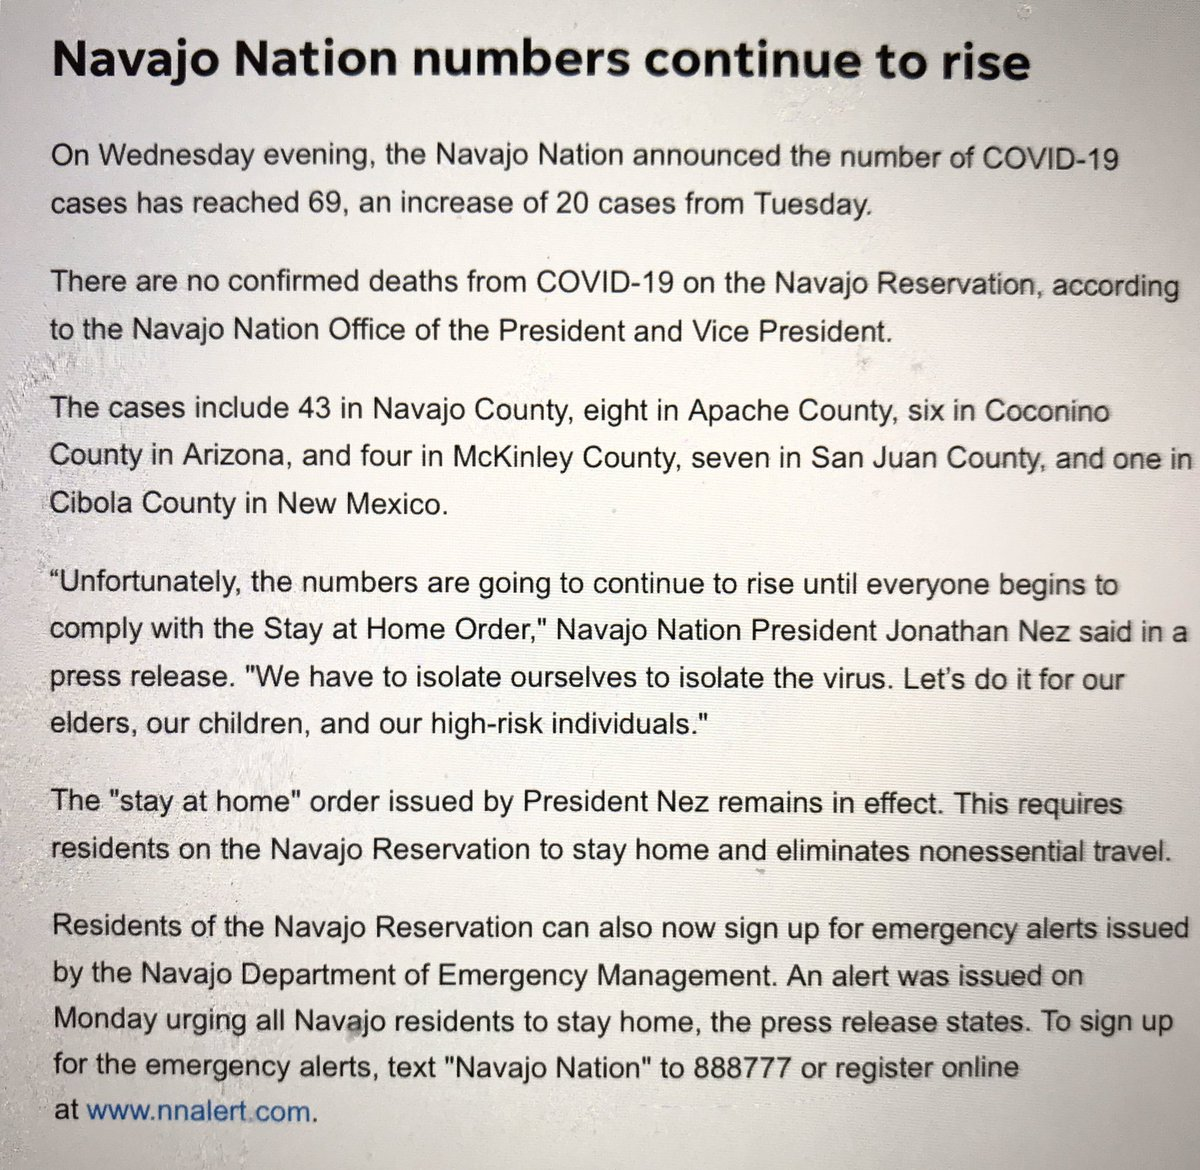 Here in #Arizona, numbers increasing and the Navajo are the worst hit community so far. #COVID19